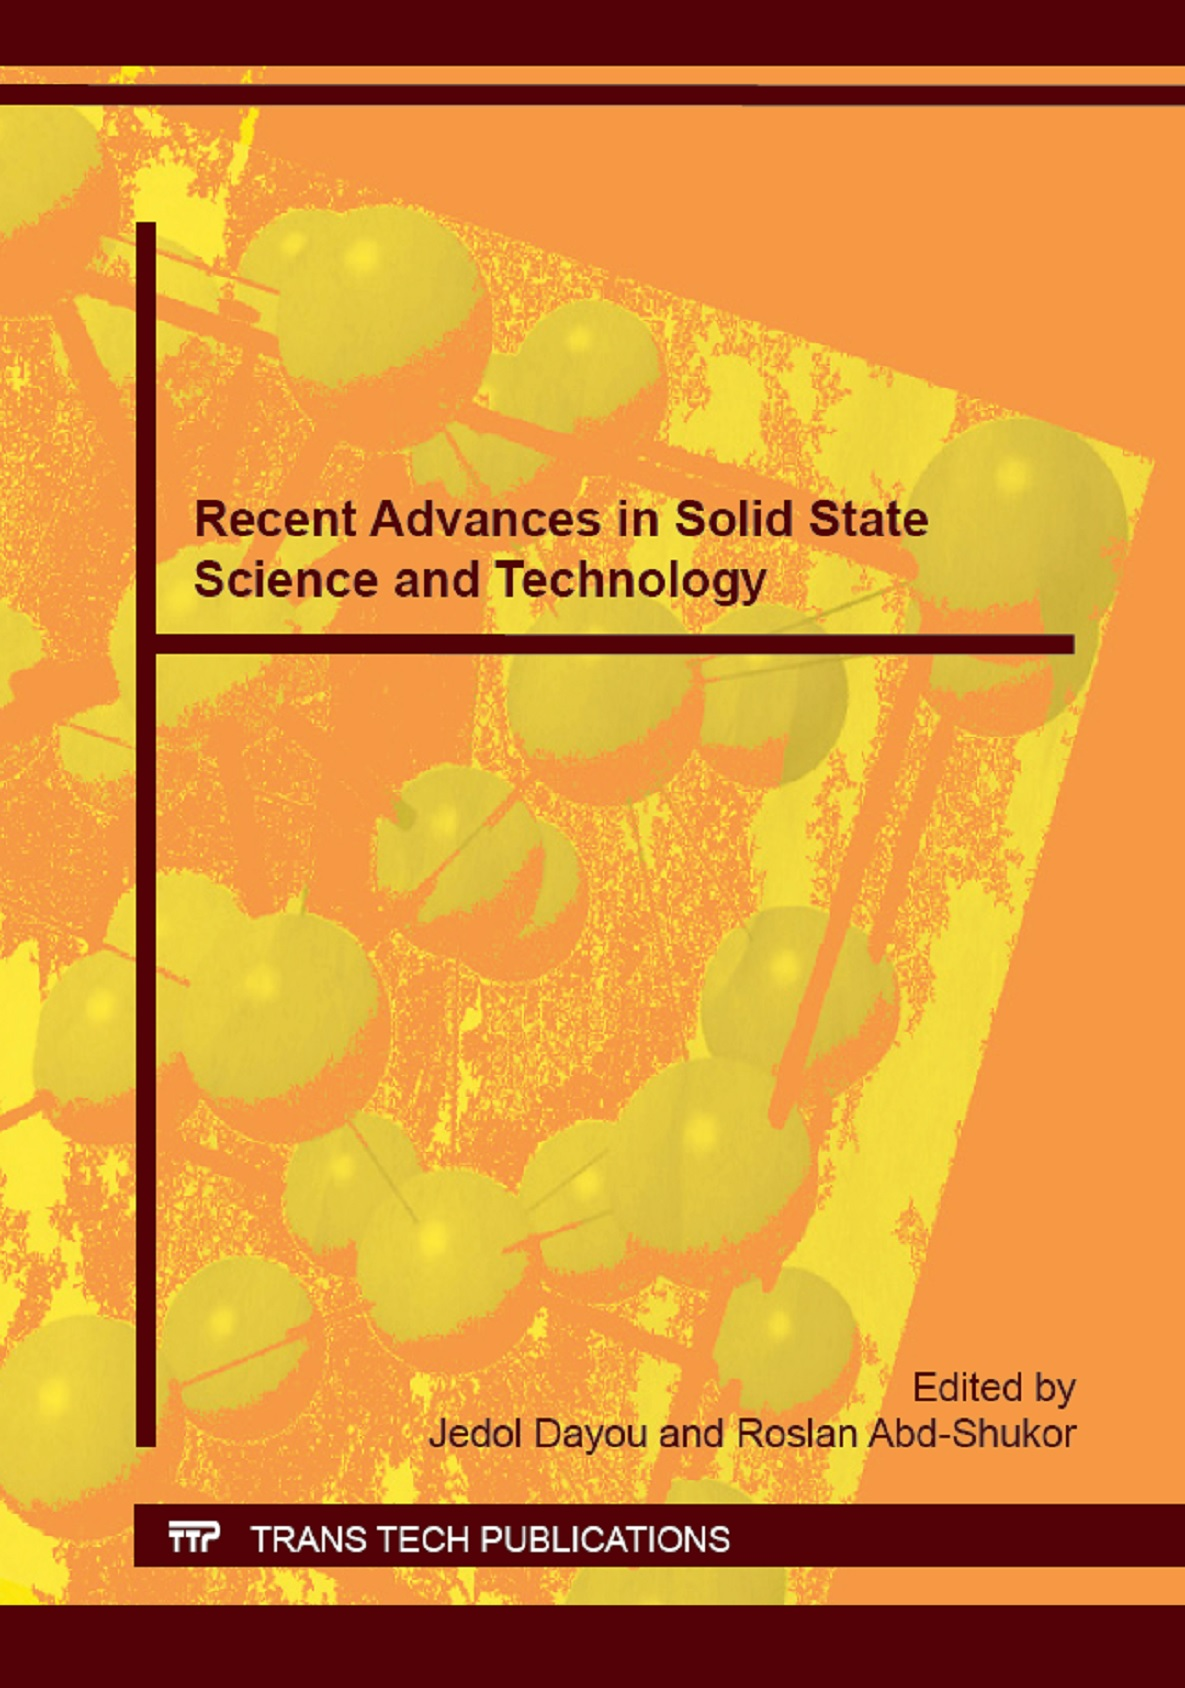 Recent Advances in Solid State Science and Technology